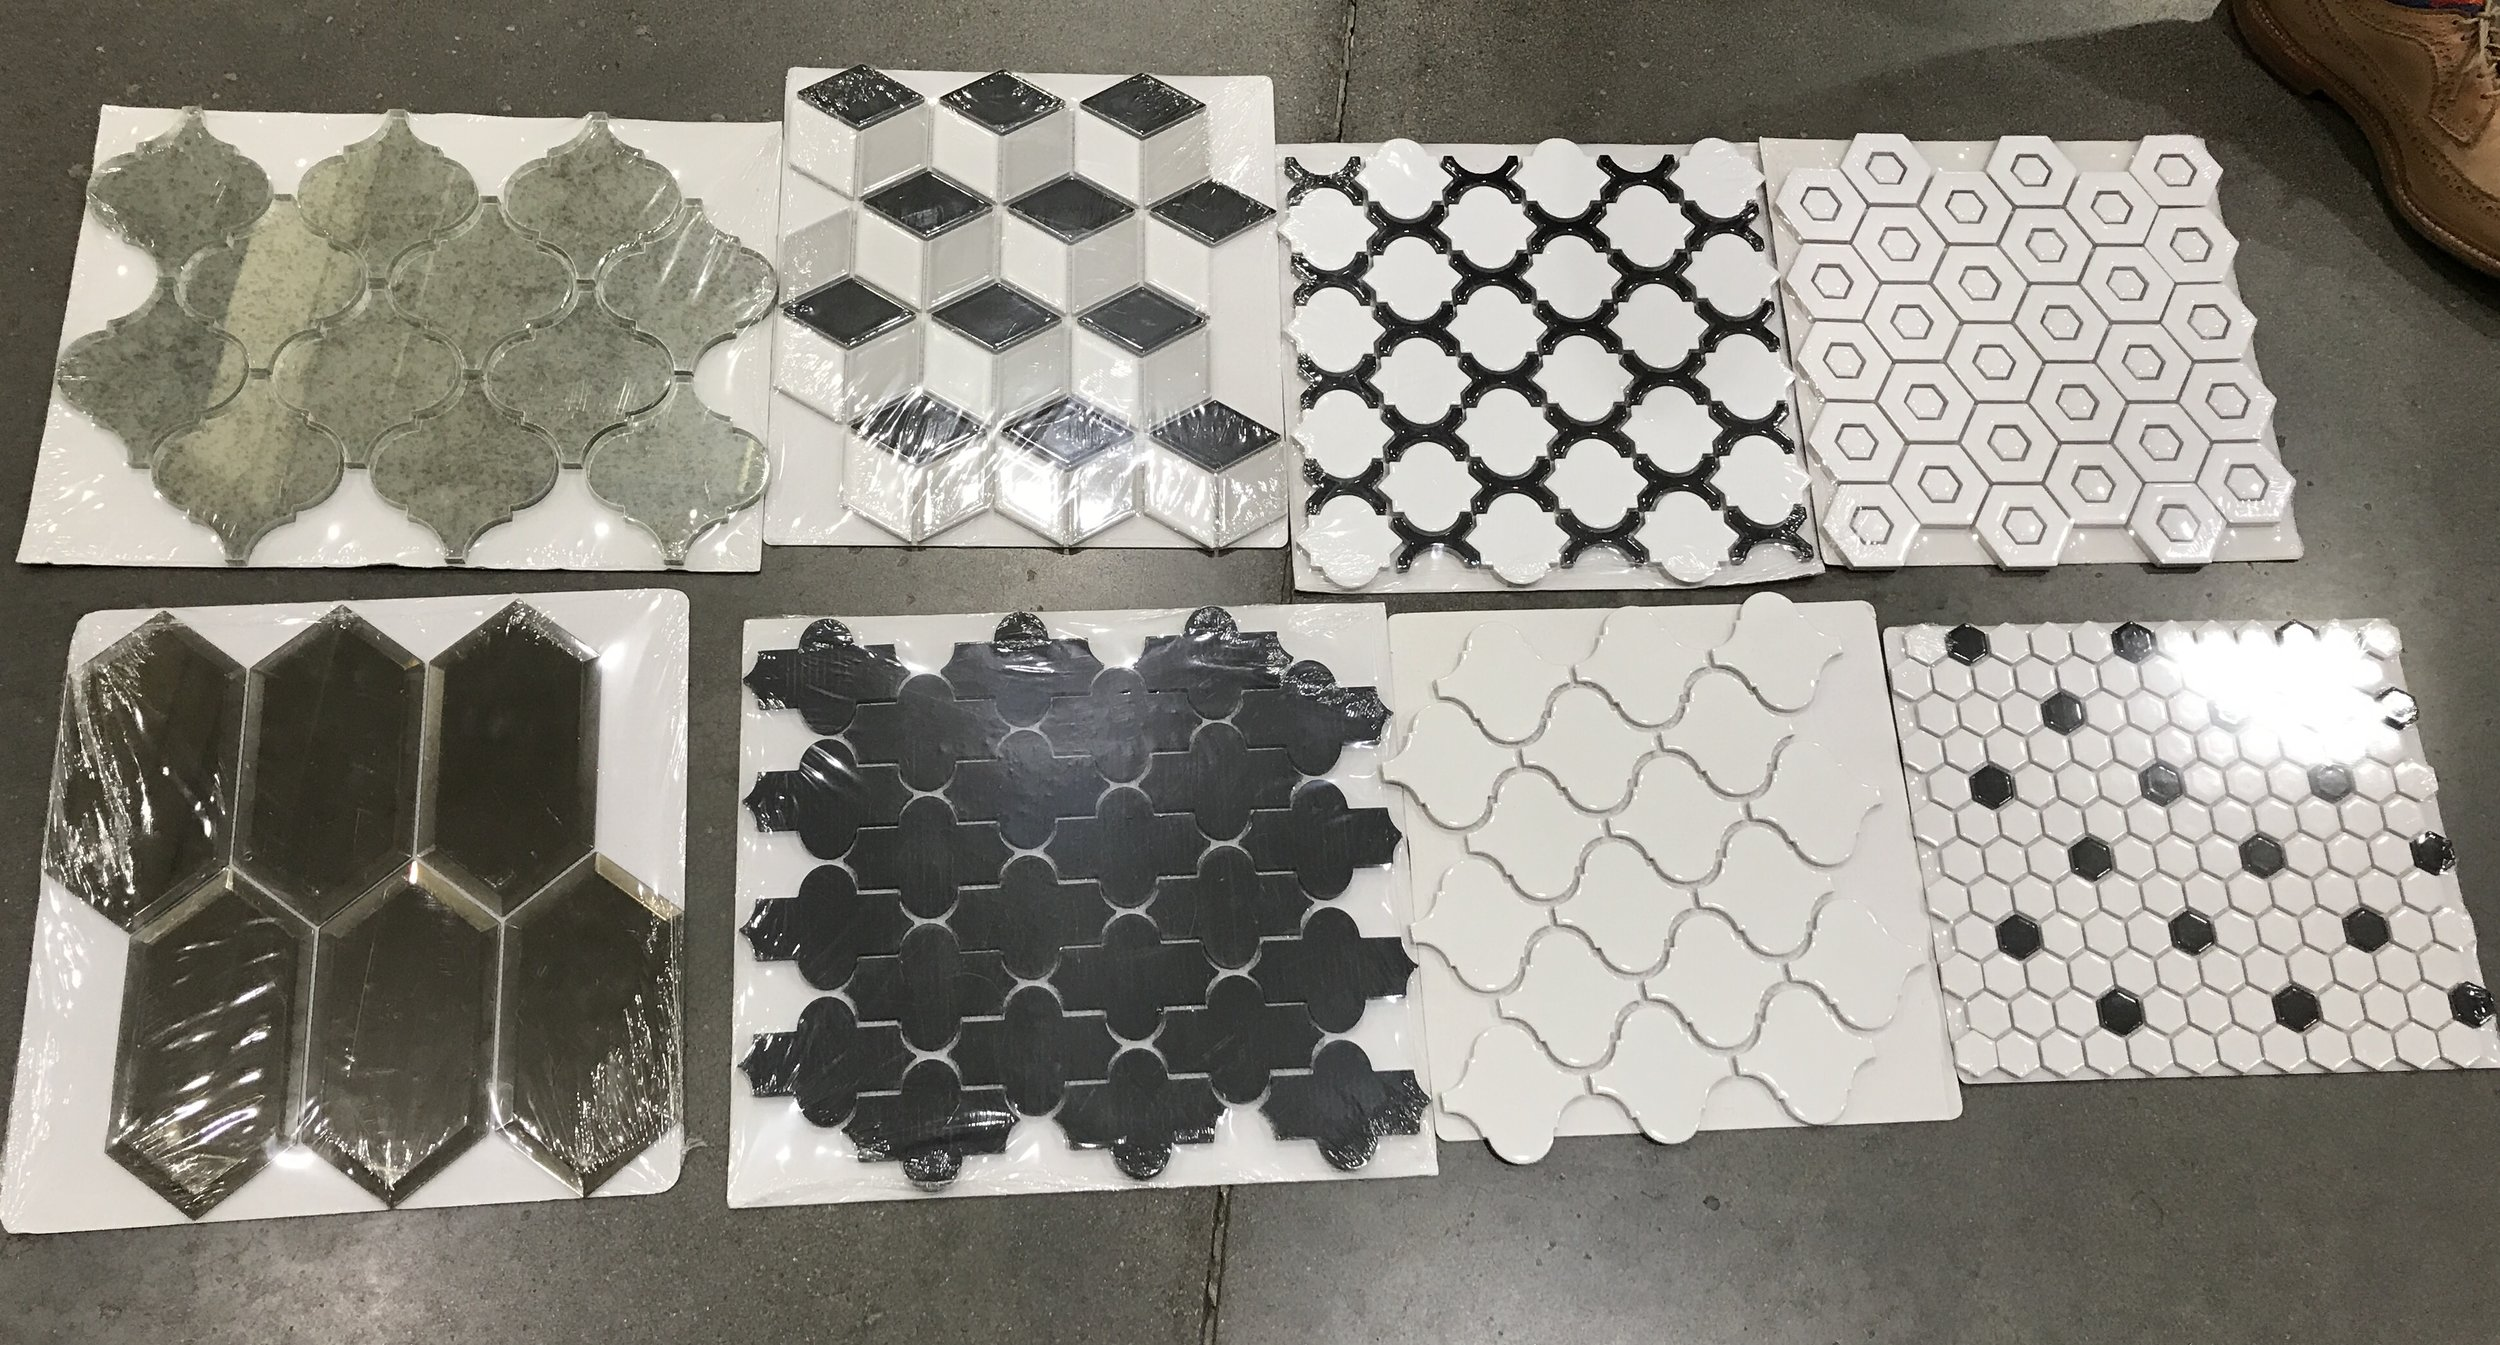 What's your favorite tile?